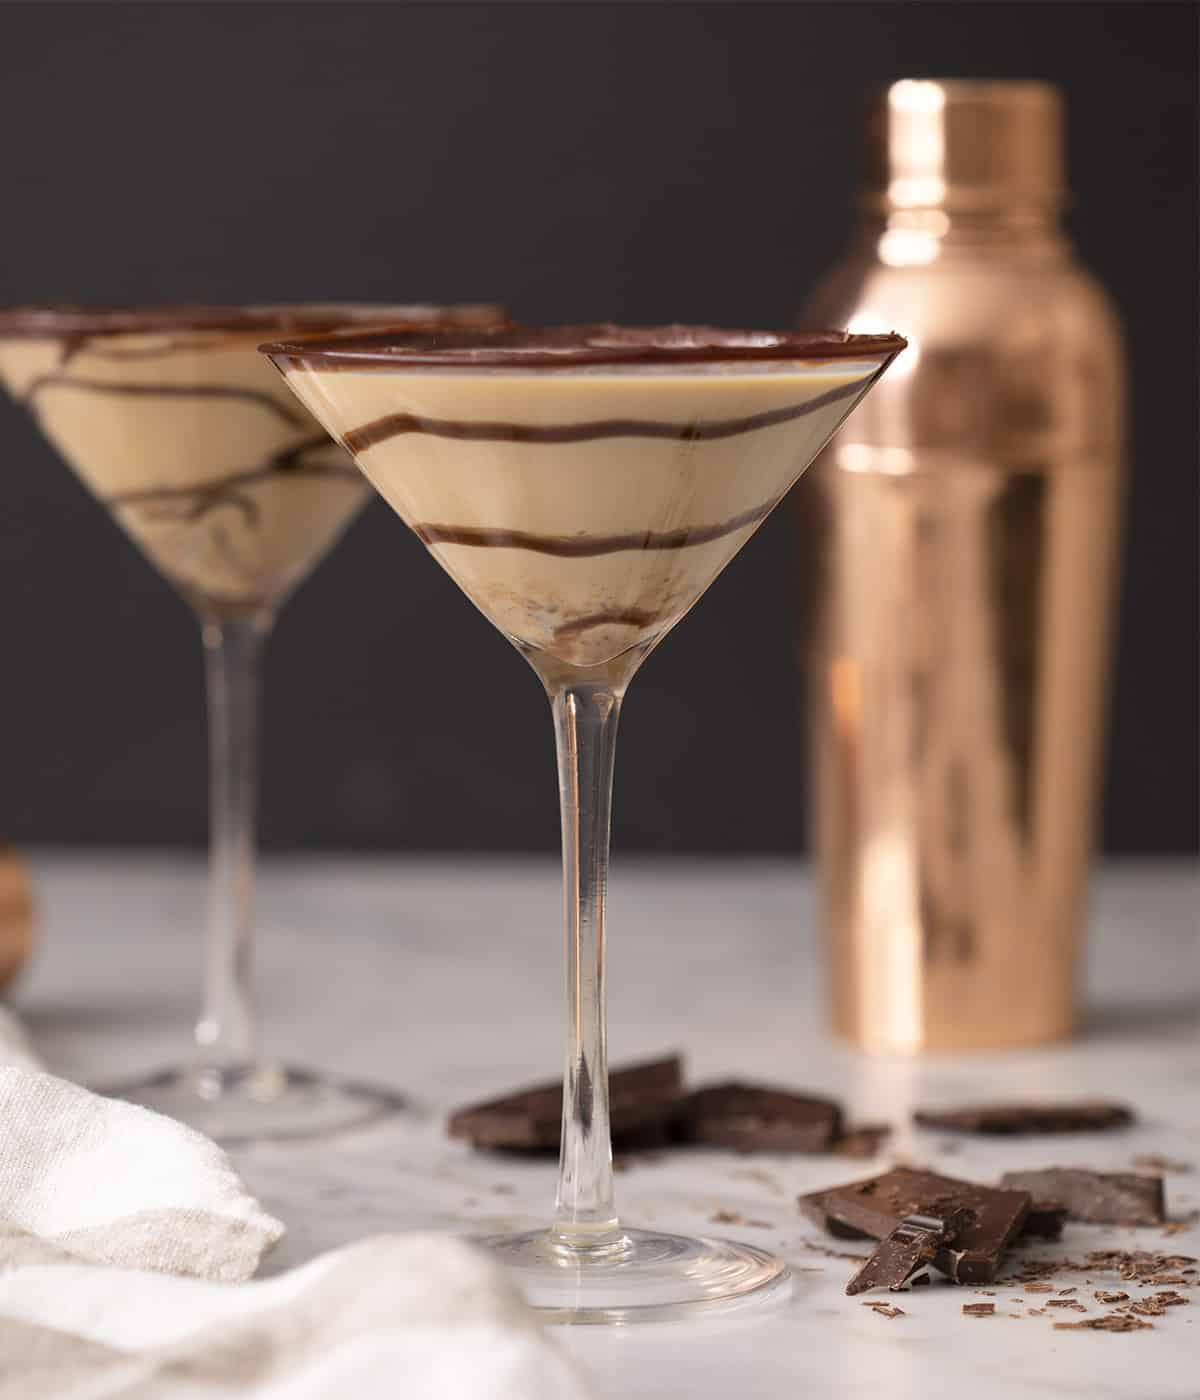 Two chocolate martinis in glasses with swirls of chocolate inside.